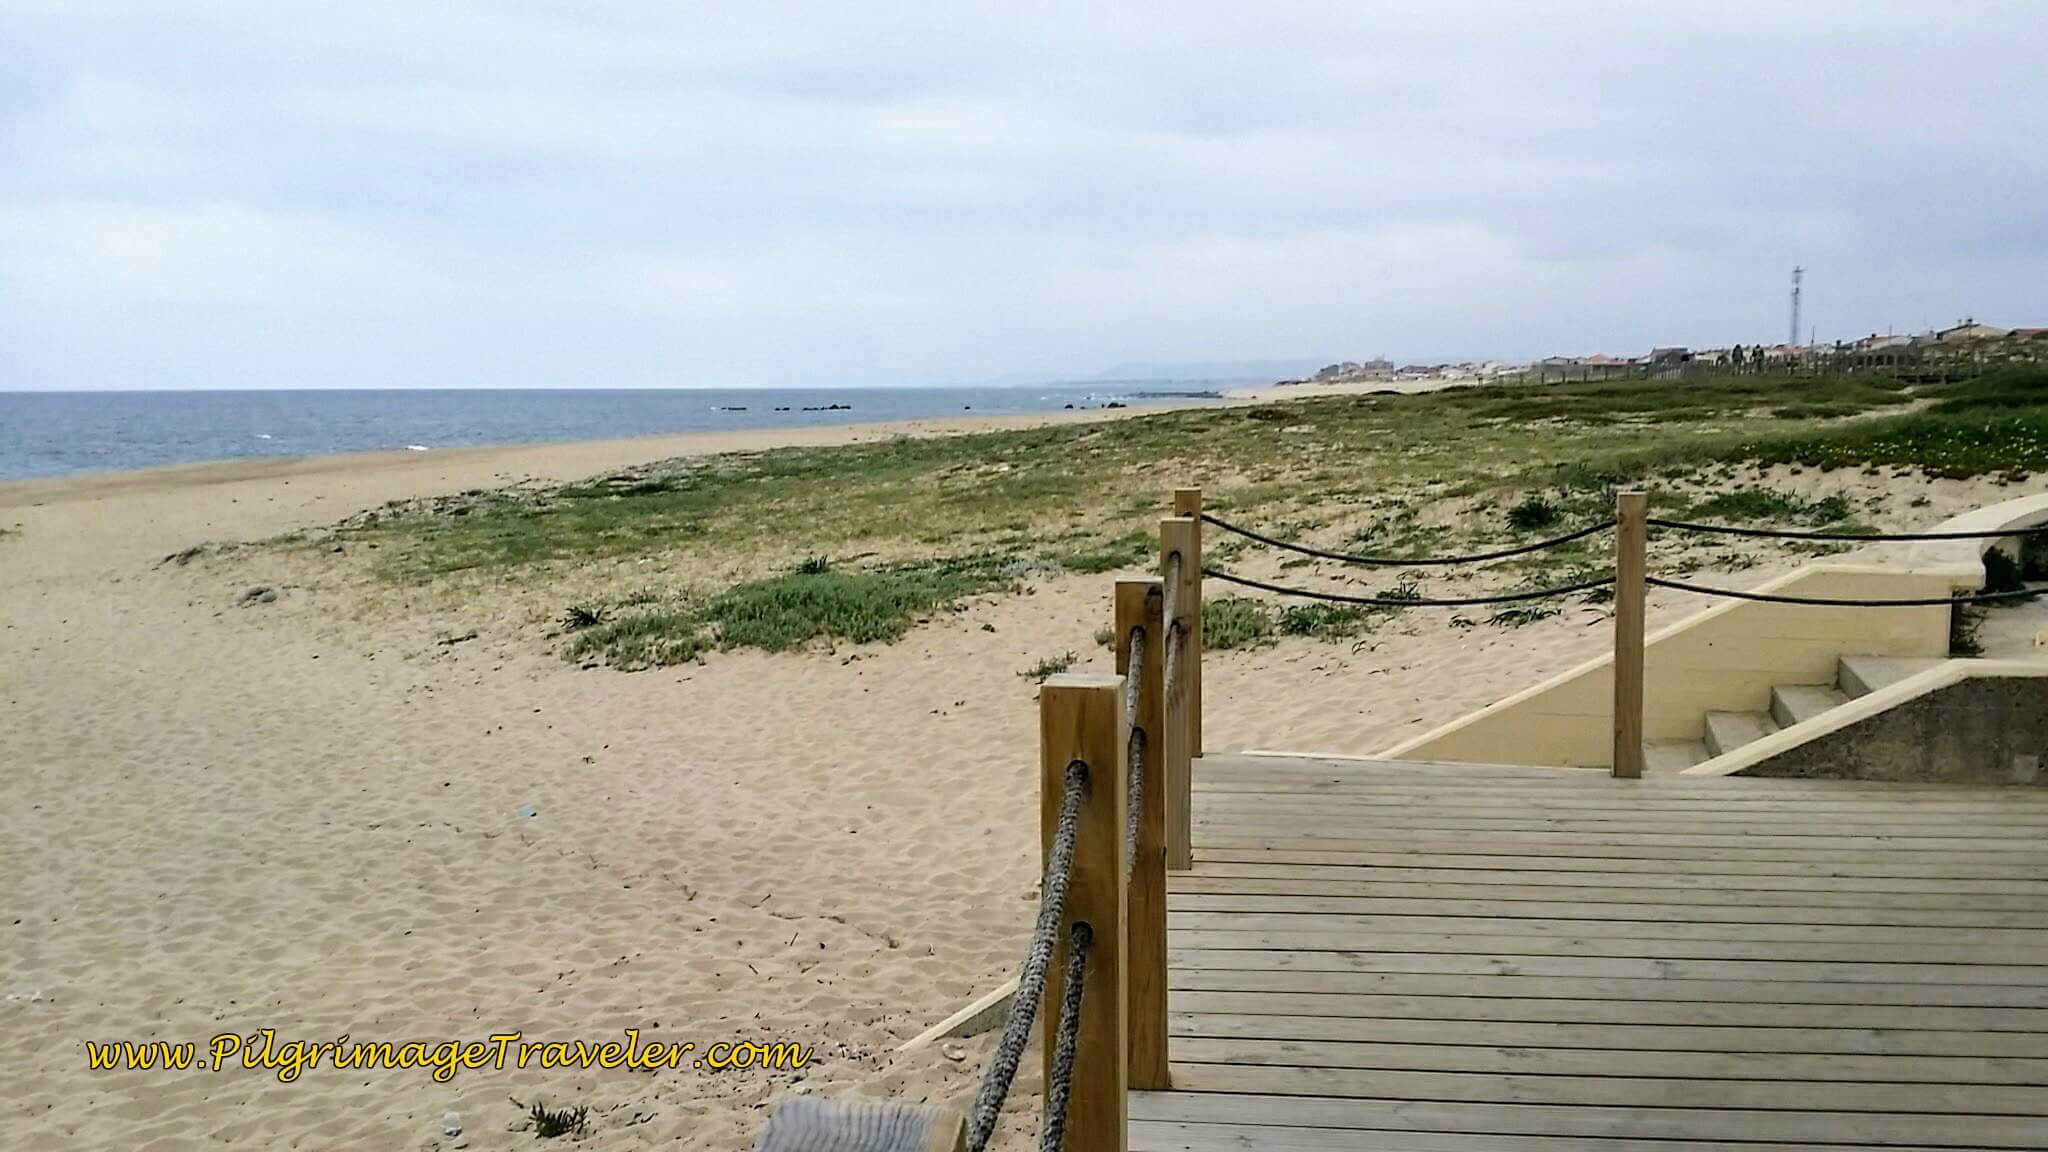 Boardwalk Ends, Turns Right to Join the Rua Marginal on day sixteen of the Camino Portugués on the Coastal Route